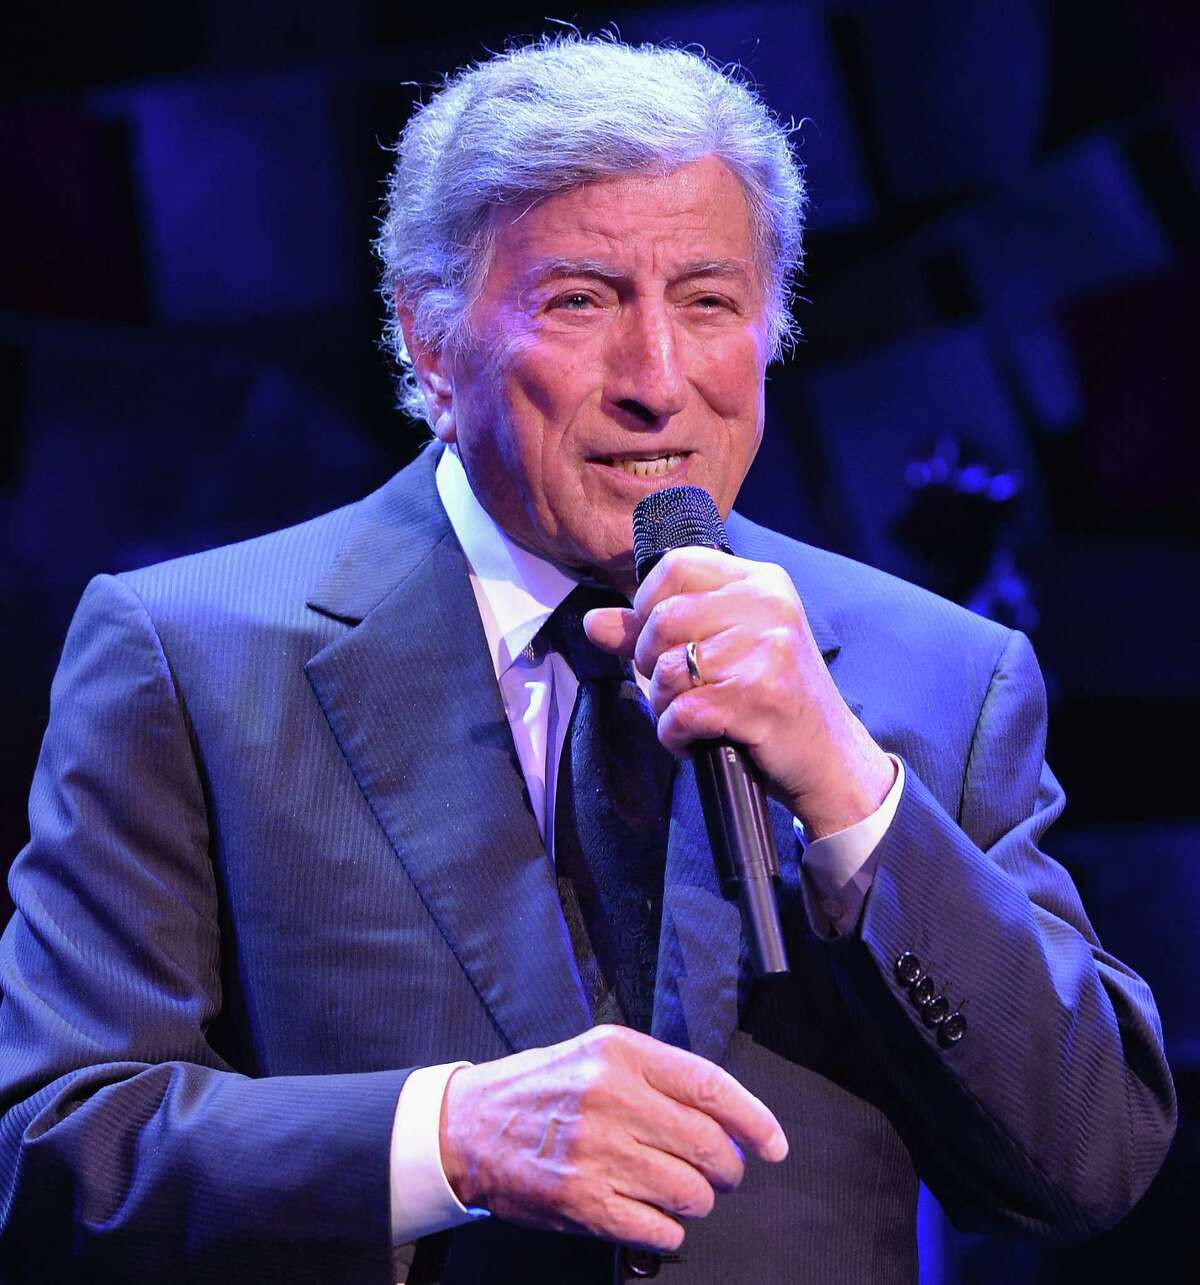 NEW YORK, NY - APRIL 02: Tony Bennett performs onstage at the SeriousFun Children's Network Gala at Cipriani 42nd Street on April 2, 2014 in New York City.